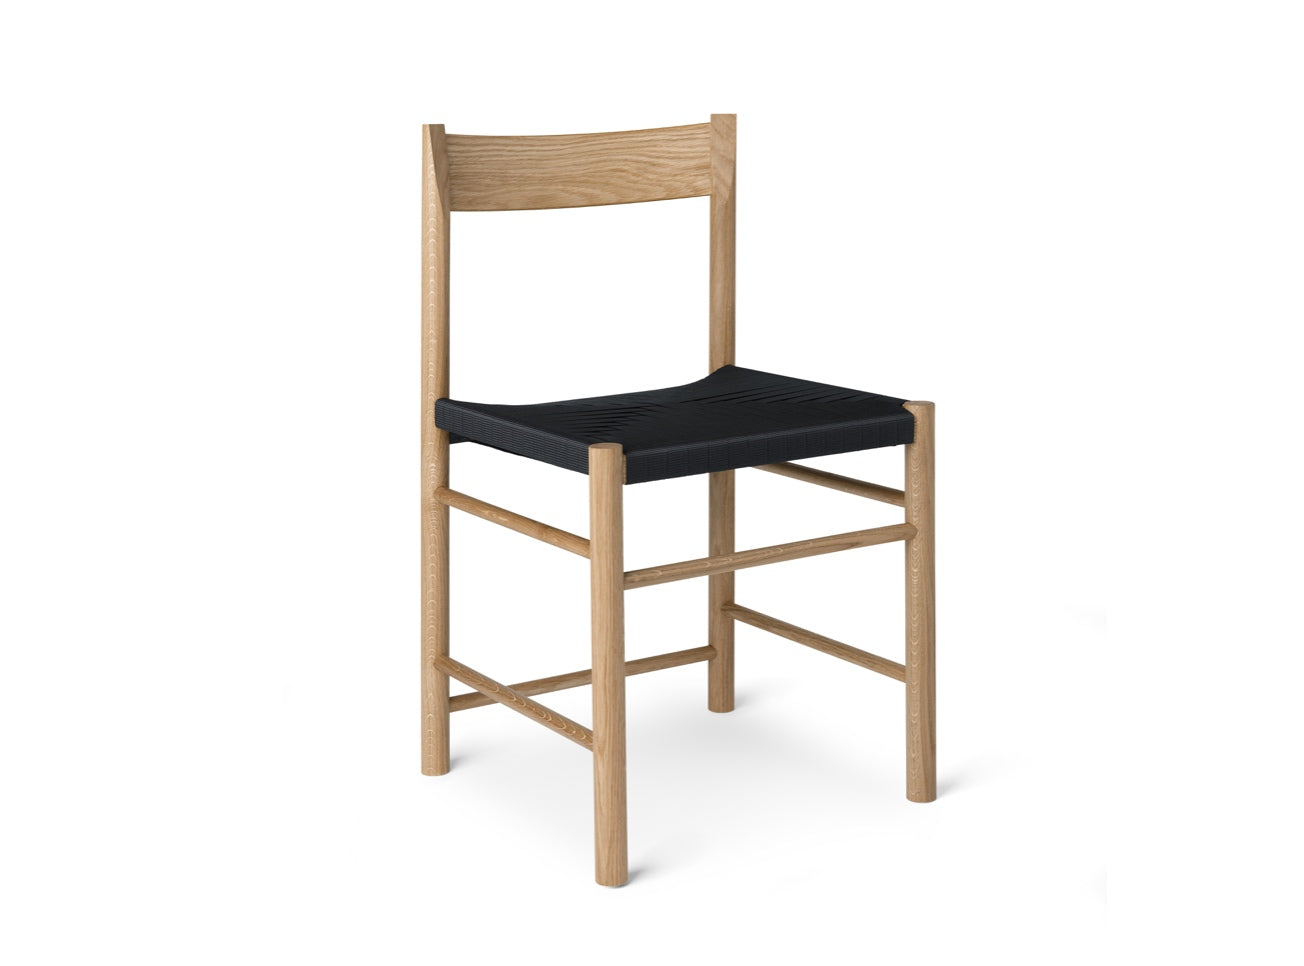 Subscription_Brdr_Krüger_Oak_&_Black_F_chair_classic_four_legged_meeting_conference_room_lightweight